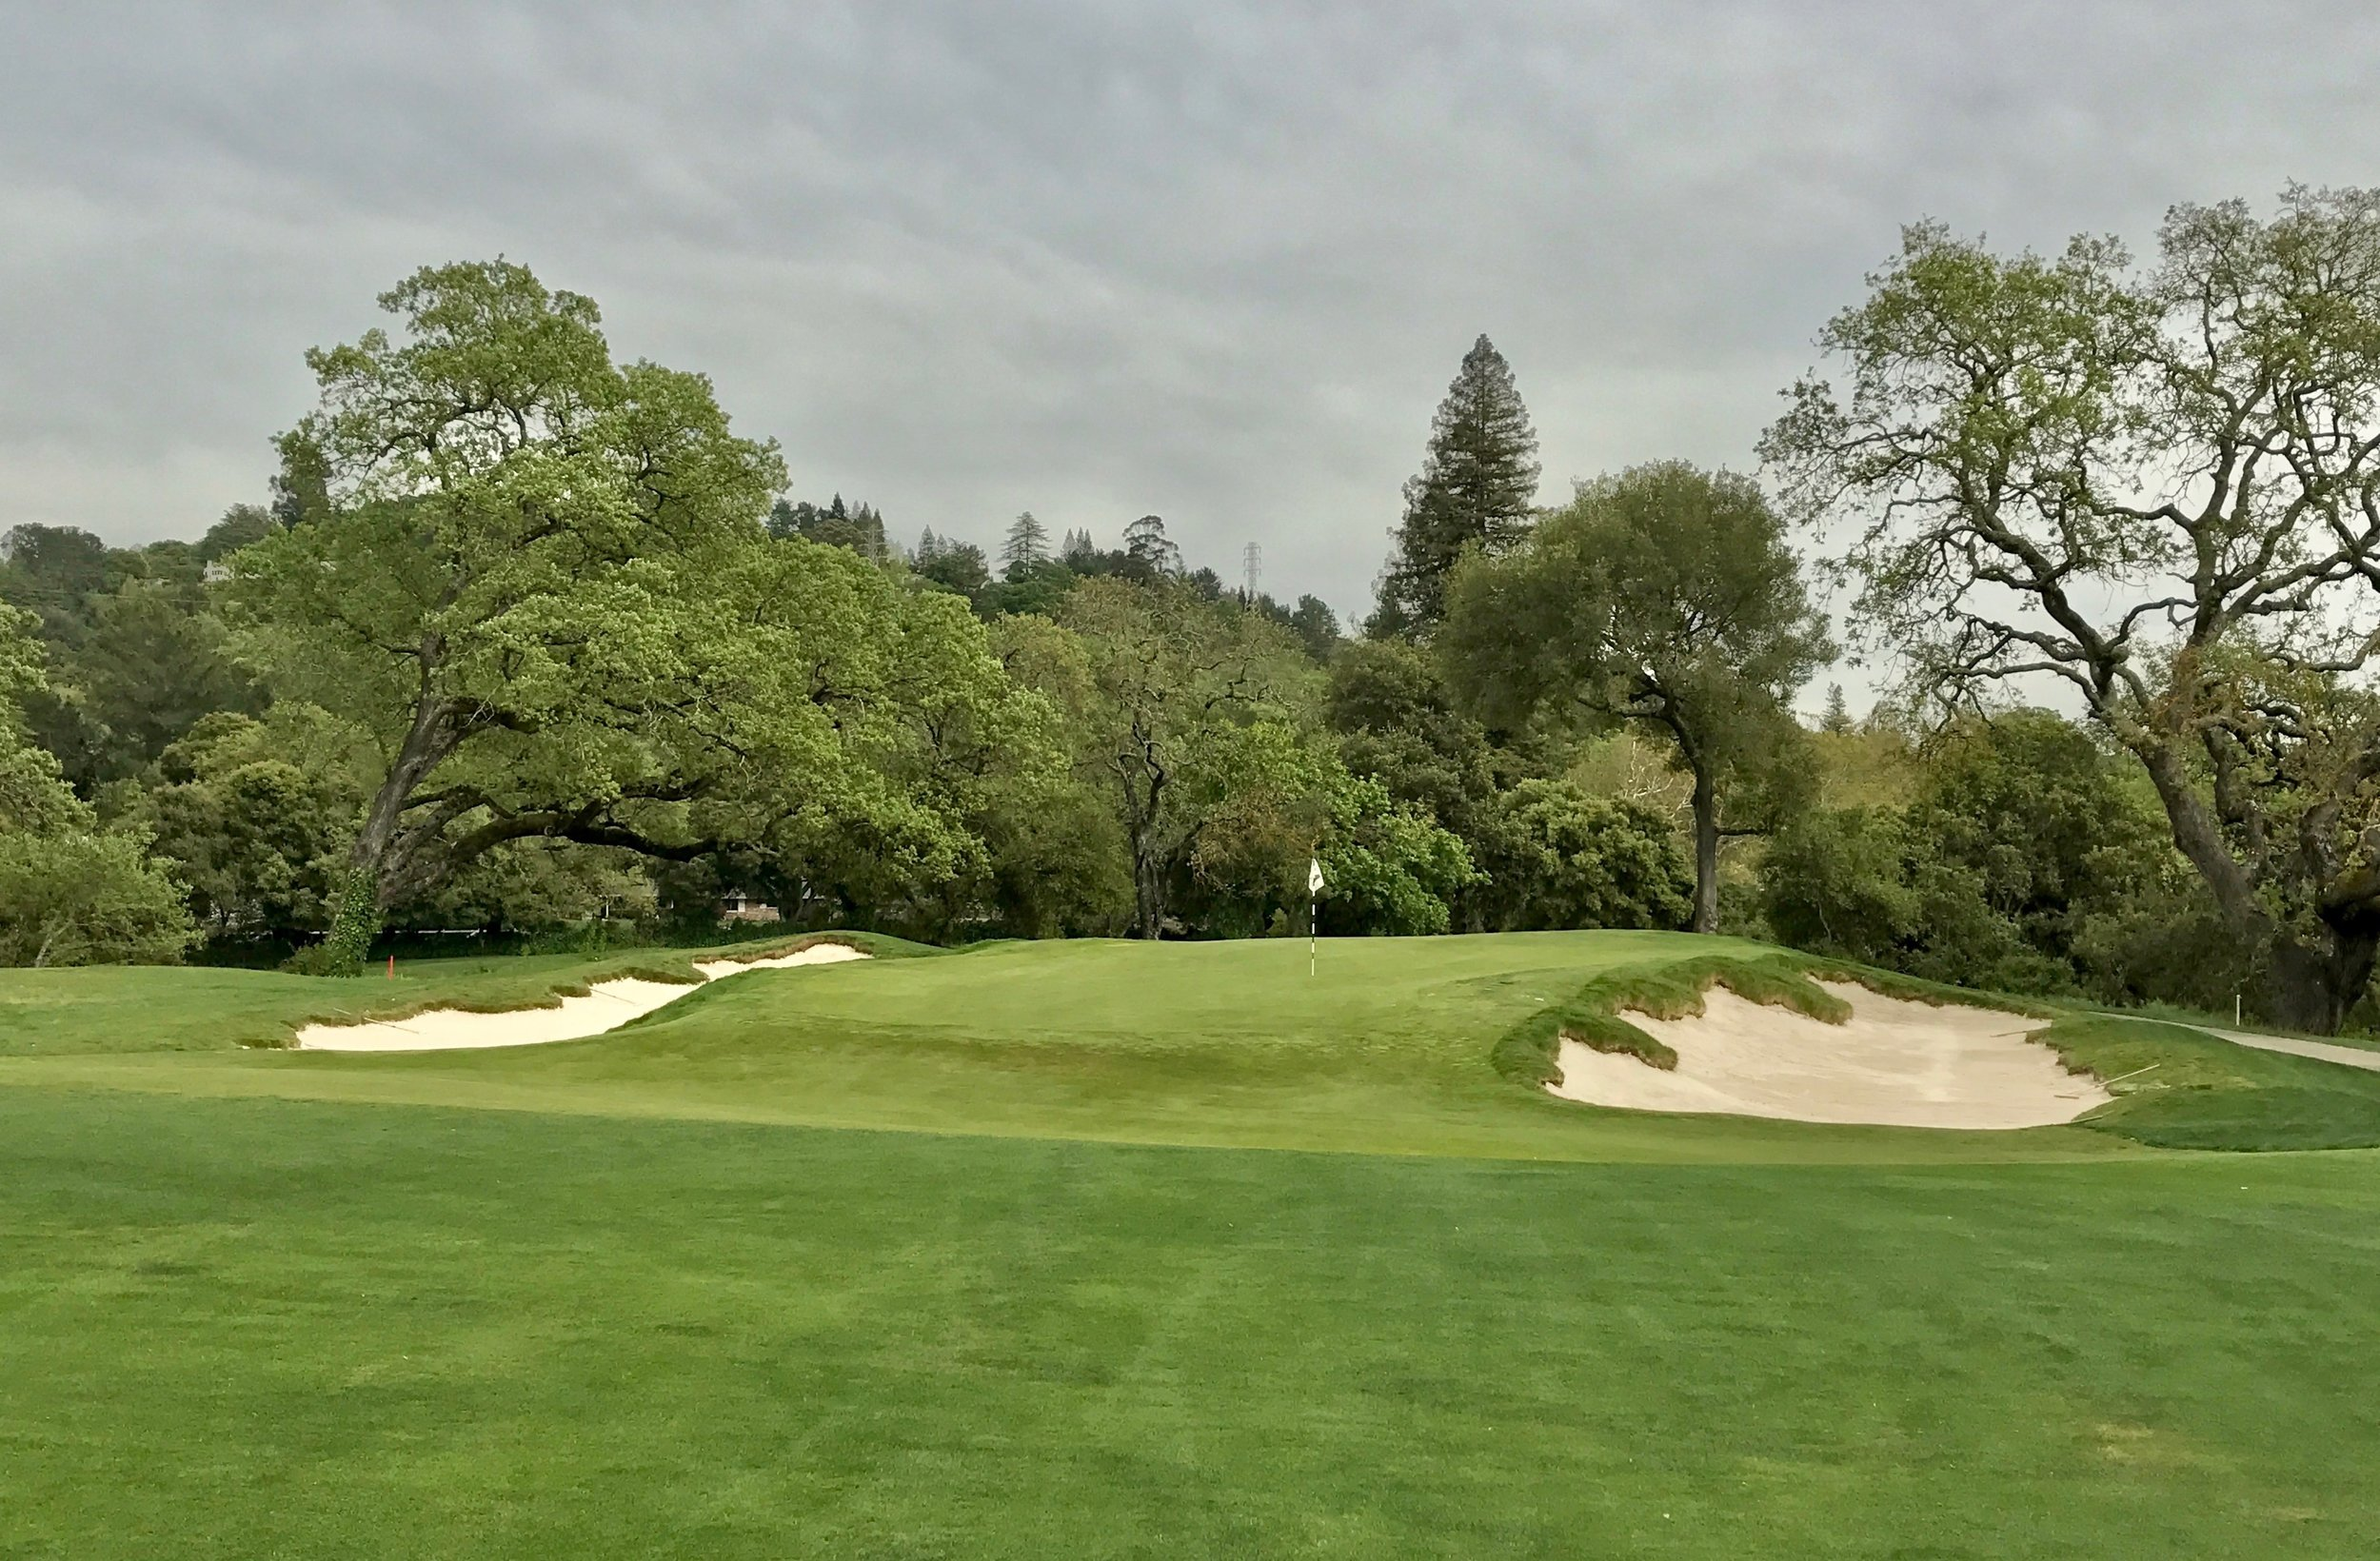 """The 14th angled 14th green, one re-worked after A.W. Tillinghast visited the course, involved one of the more subtle but appealing changes. By lowering the front left of the green, raising the the back of the left bunker, and dialing the horizon lines, the green is now profiled against the bunker and appears to """"hover."""""""